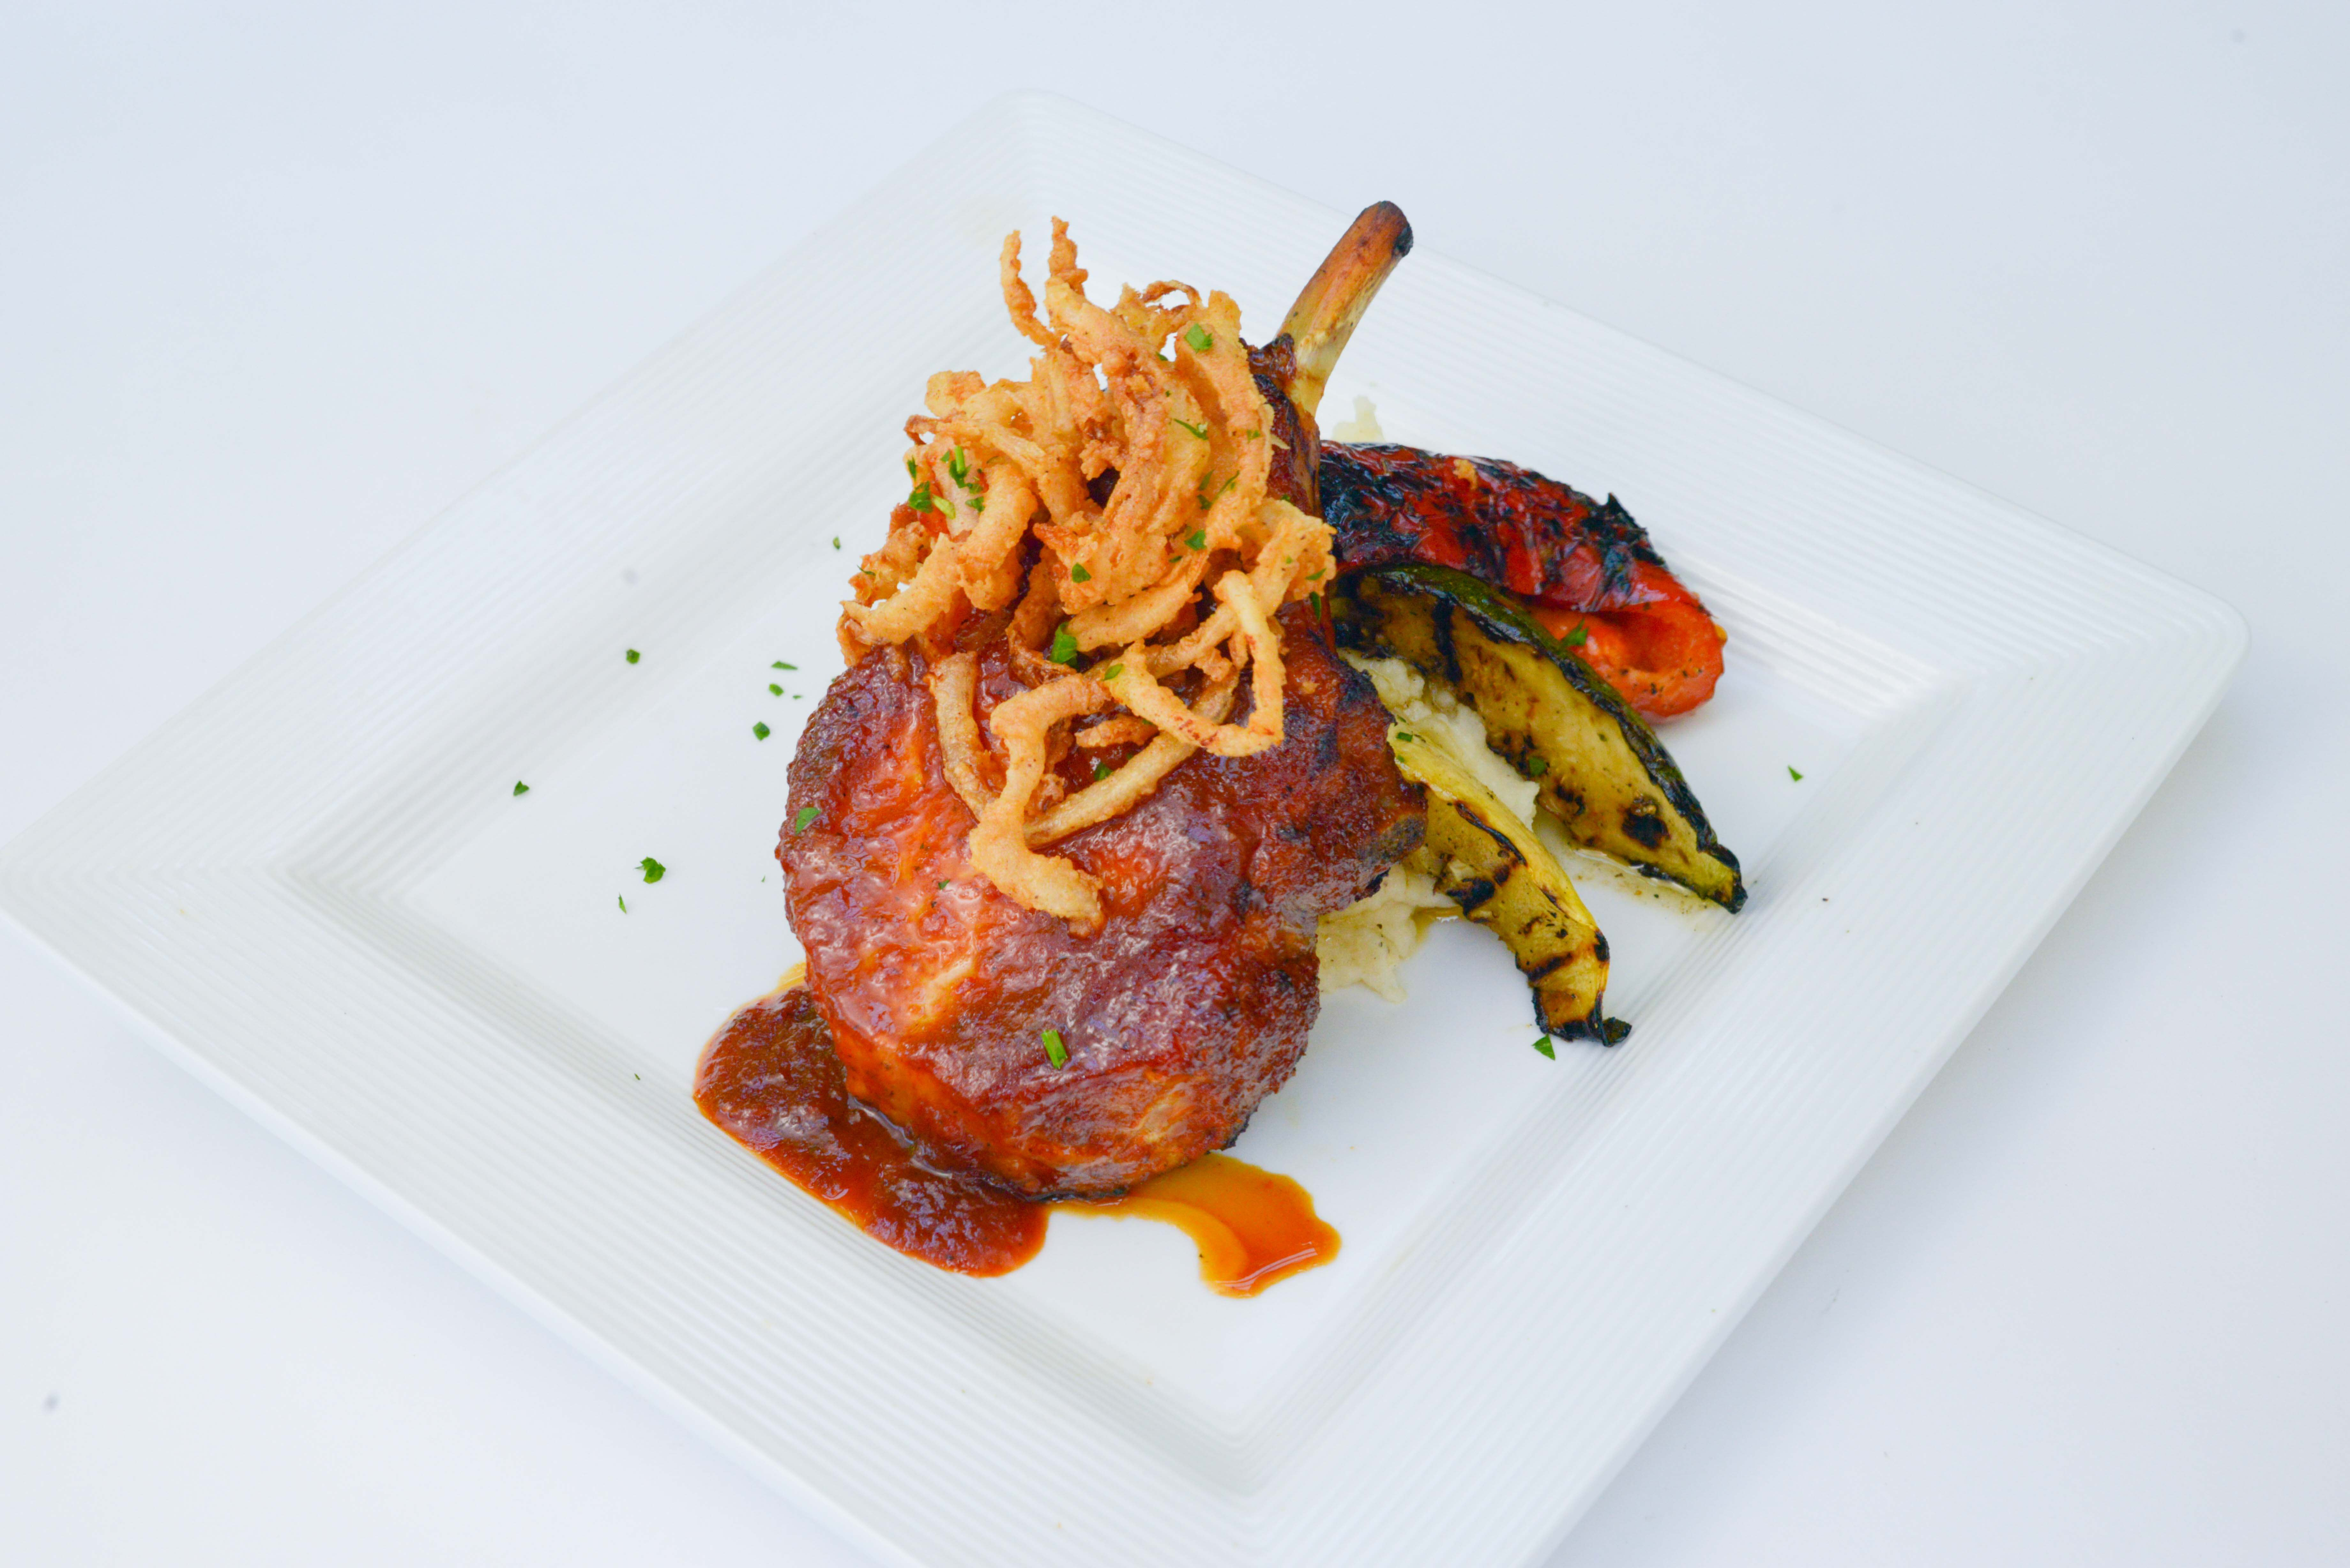 Beef glazed with sauce, topped with crispy onions and served alongside charred vegetables